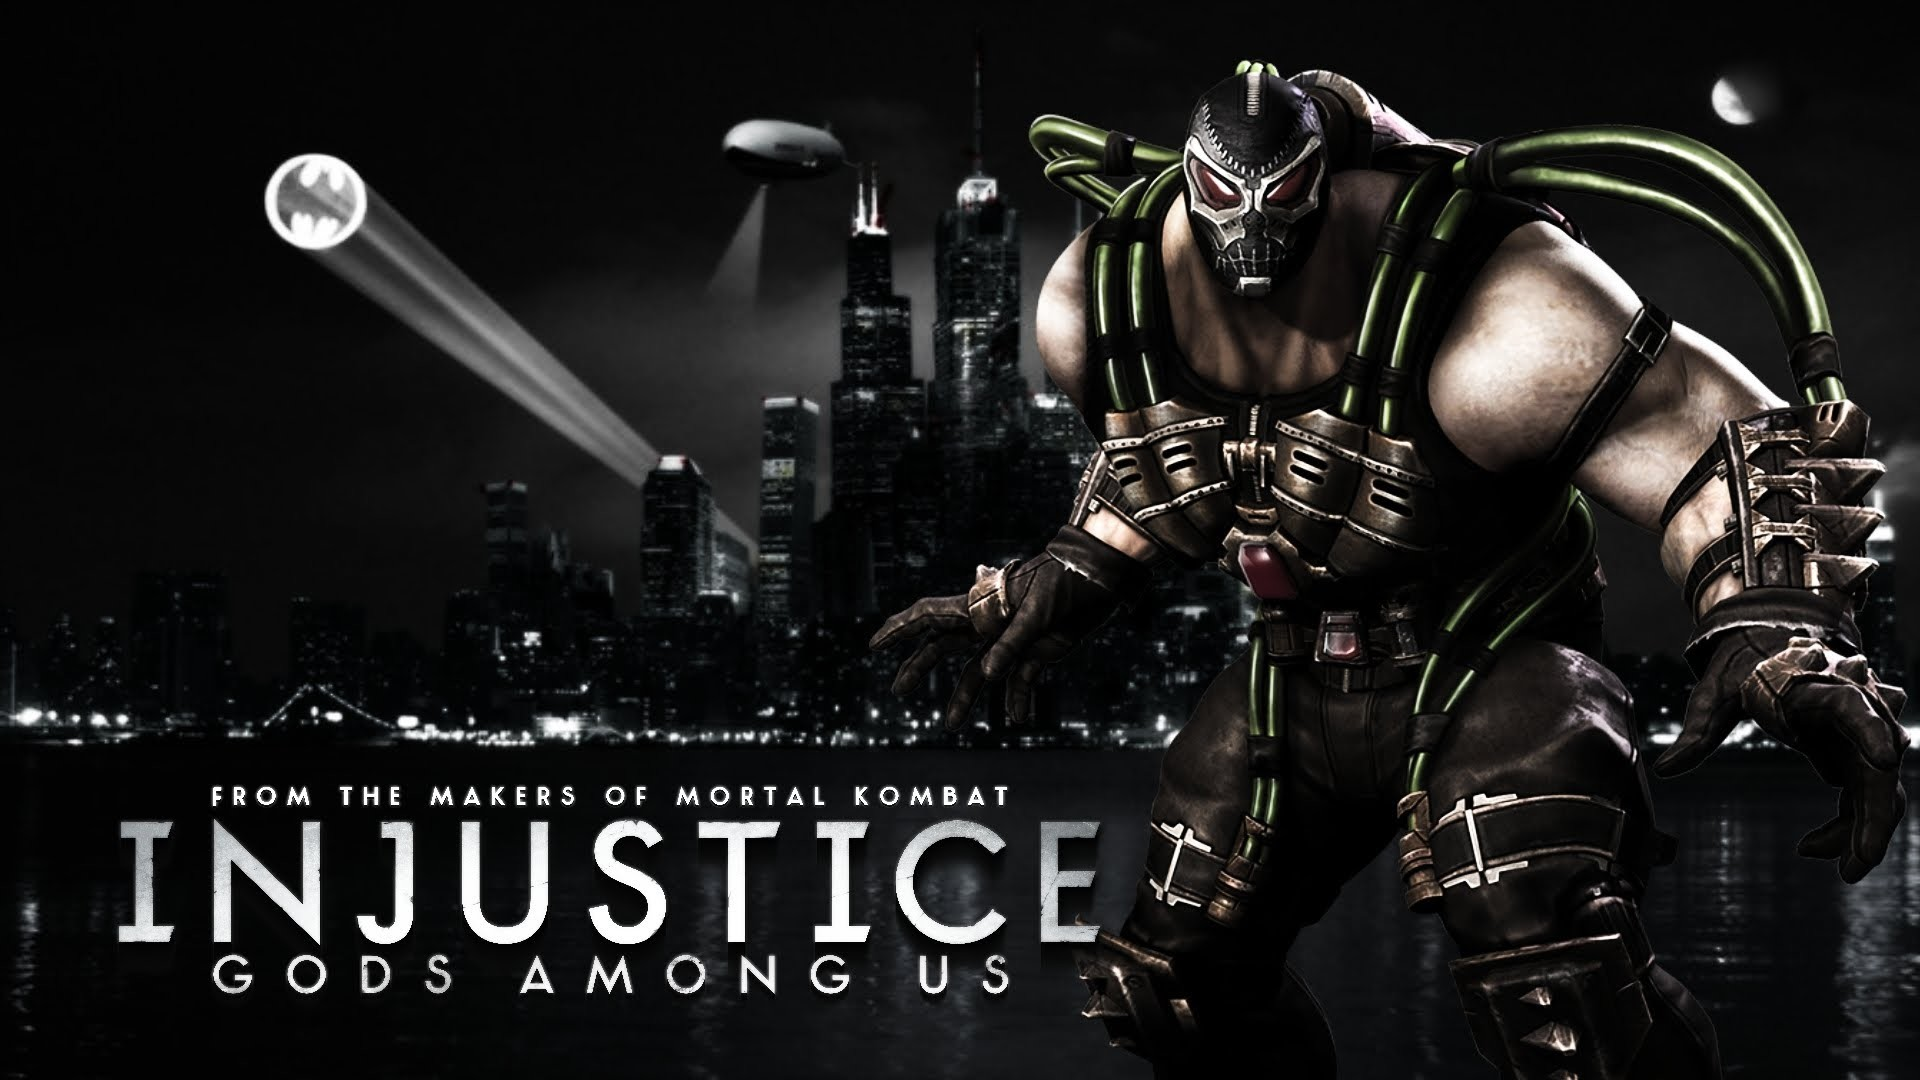 1920x1080 Bane wallpaper as promised : INJUSTICE Wallpapers: Injustice 2  injustice-gods-among-us-bane-primary-costume-concept- ...